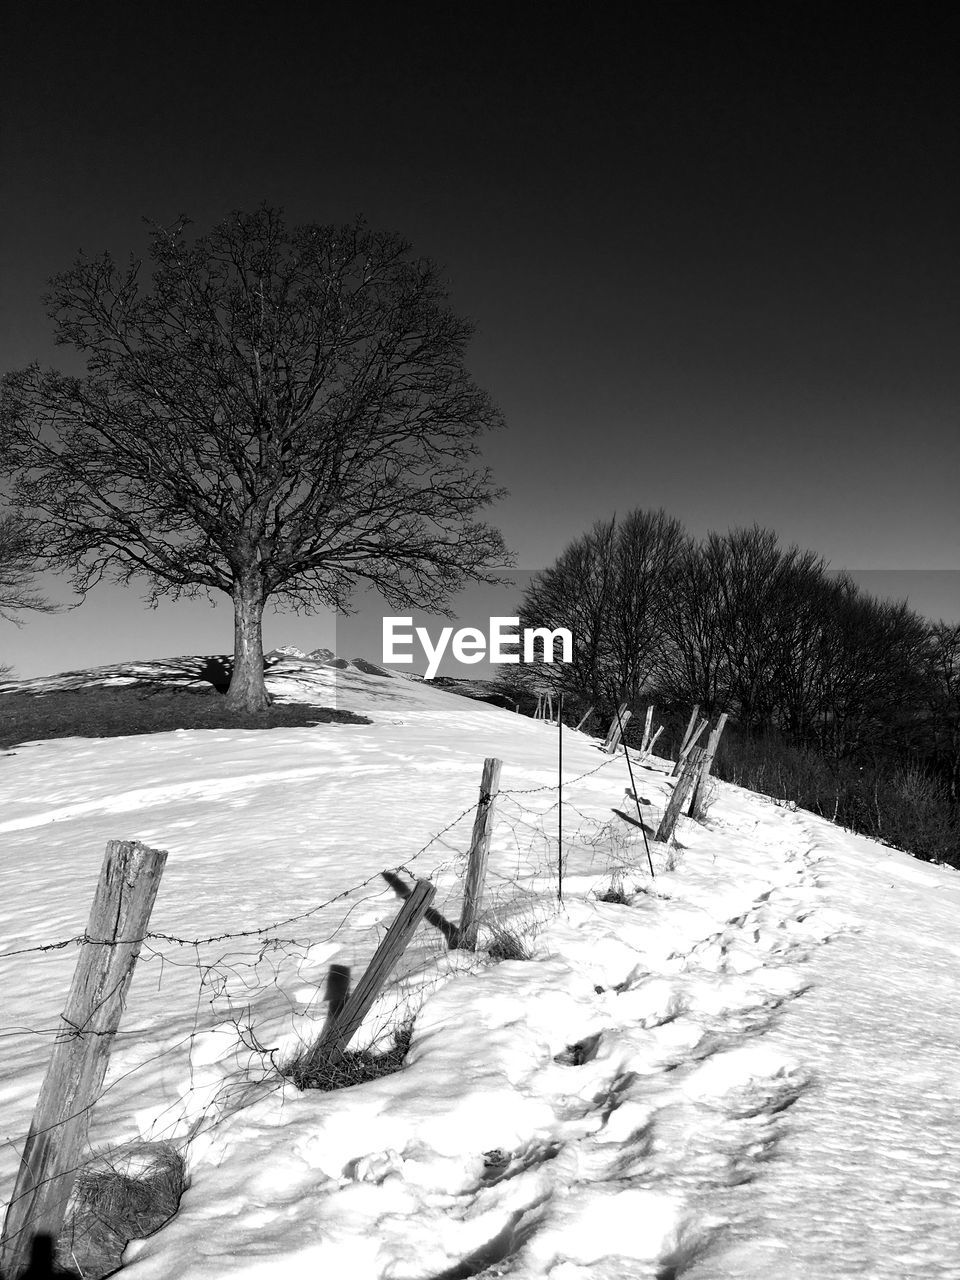 snow, cold temperature, winter, tree, plant, field, covering, beauty in nature, scenics - nature, nature, sky, barrier, boundary, fence, environment, land, tranquility, bare tree, landscape, no people, outdoors, snowcapped mountain